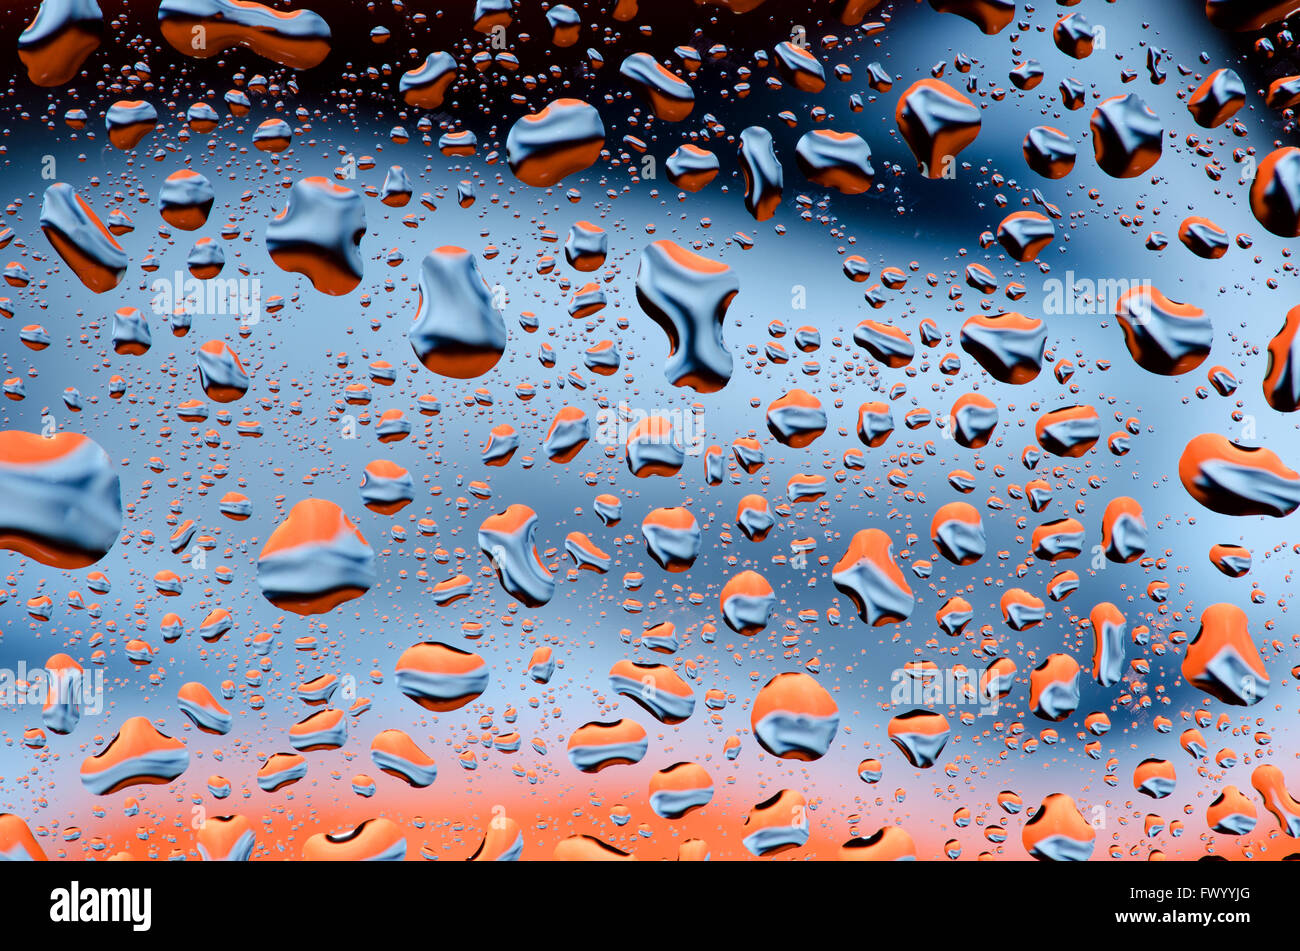 Black blue orange background with water drops pattern. - Stock Image